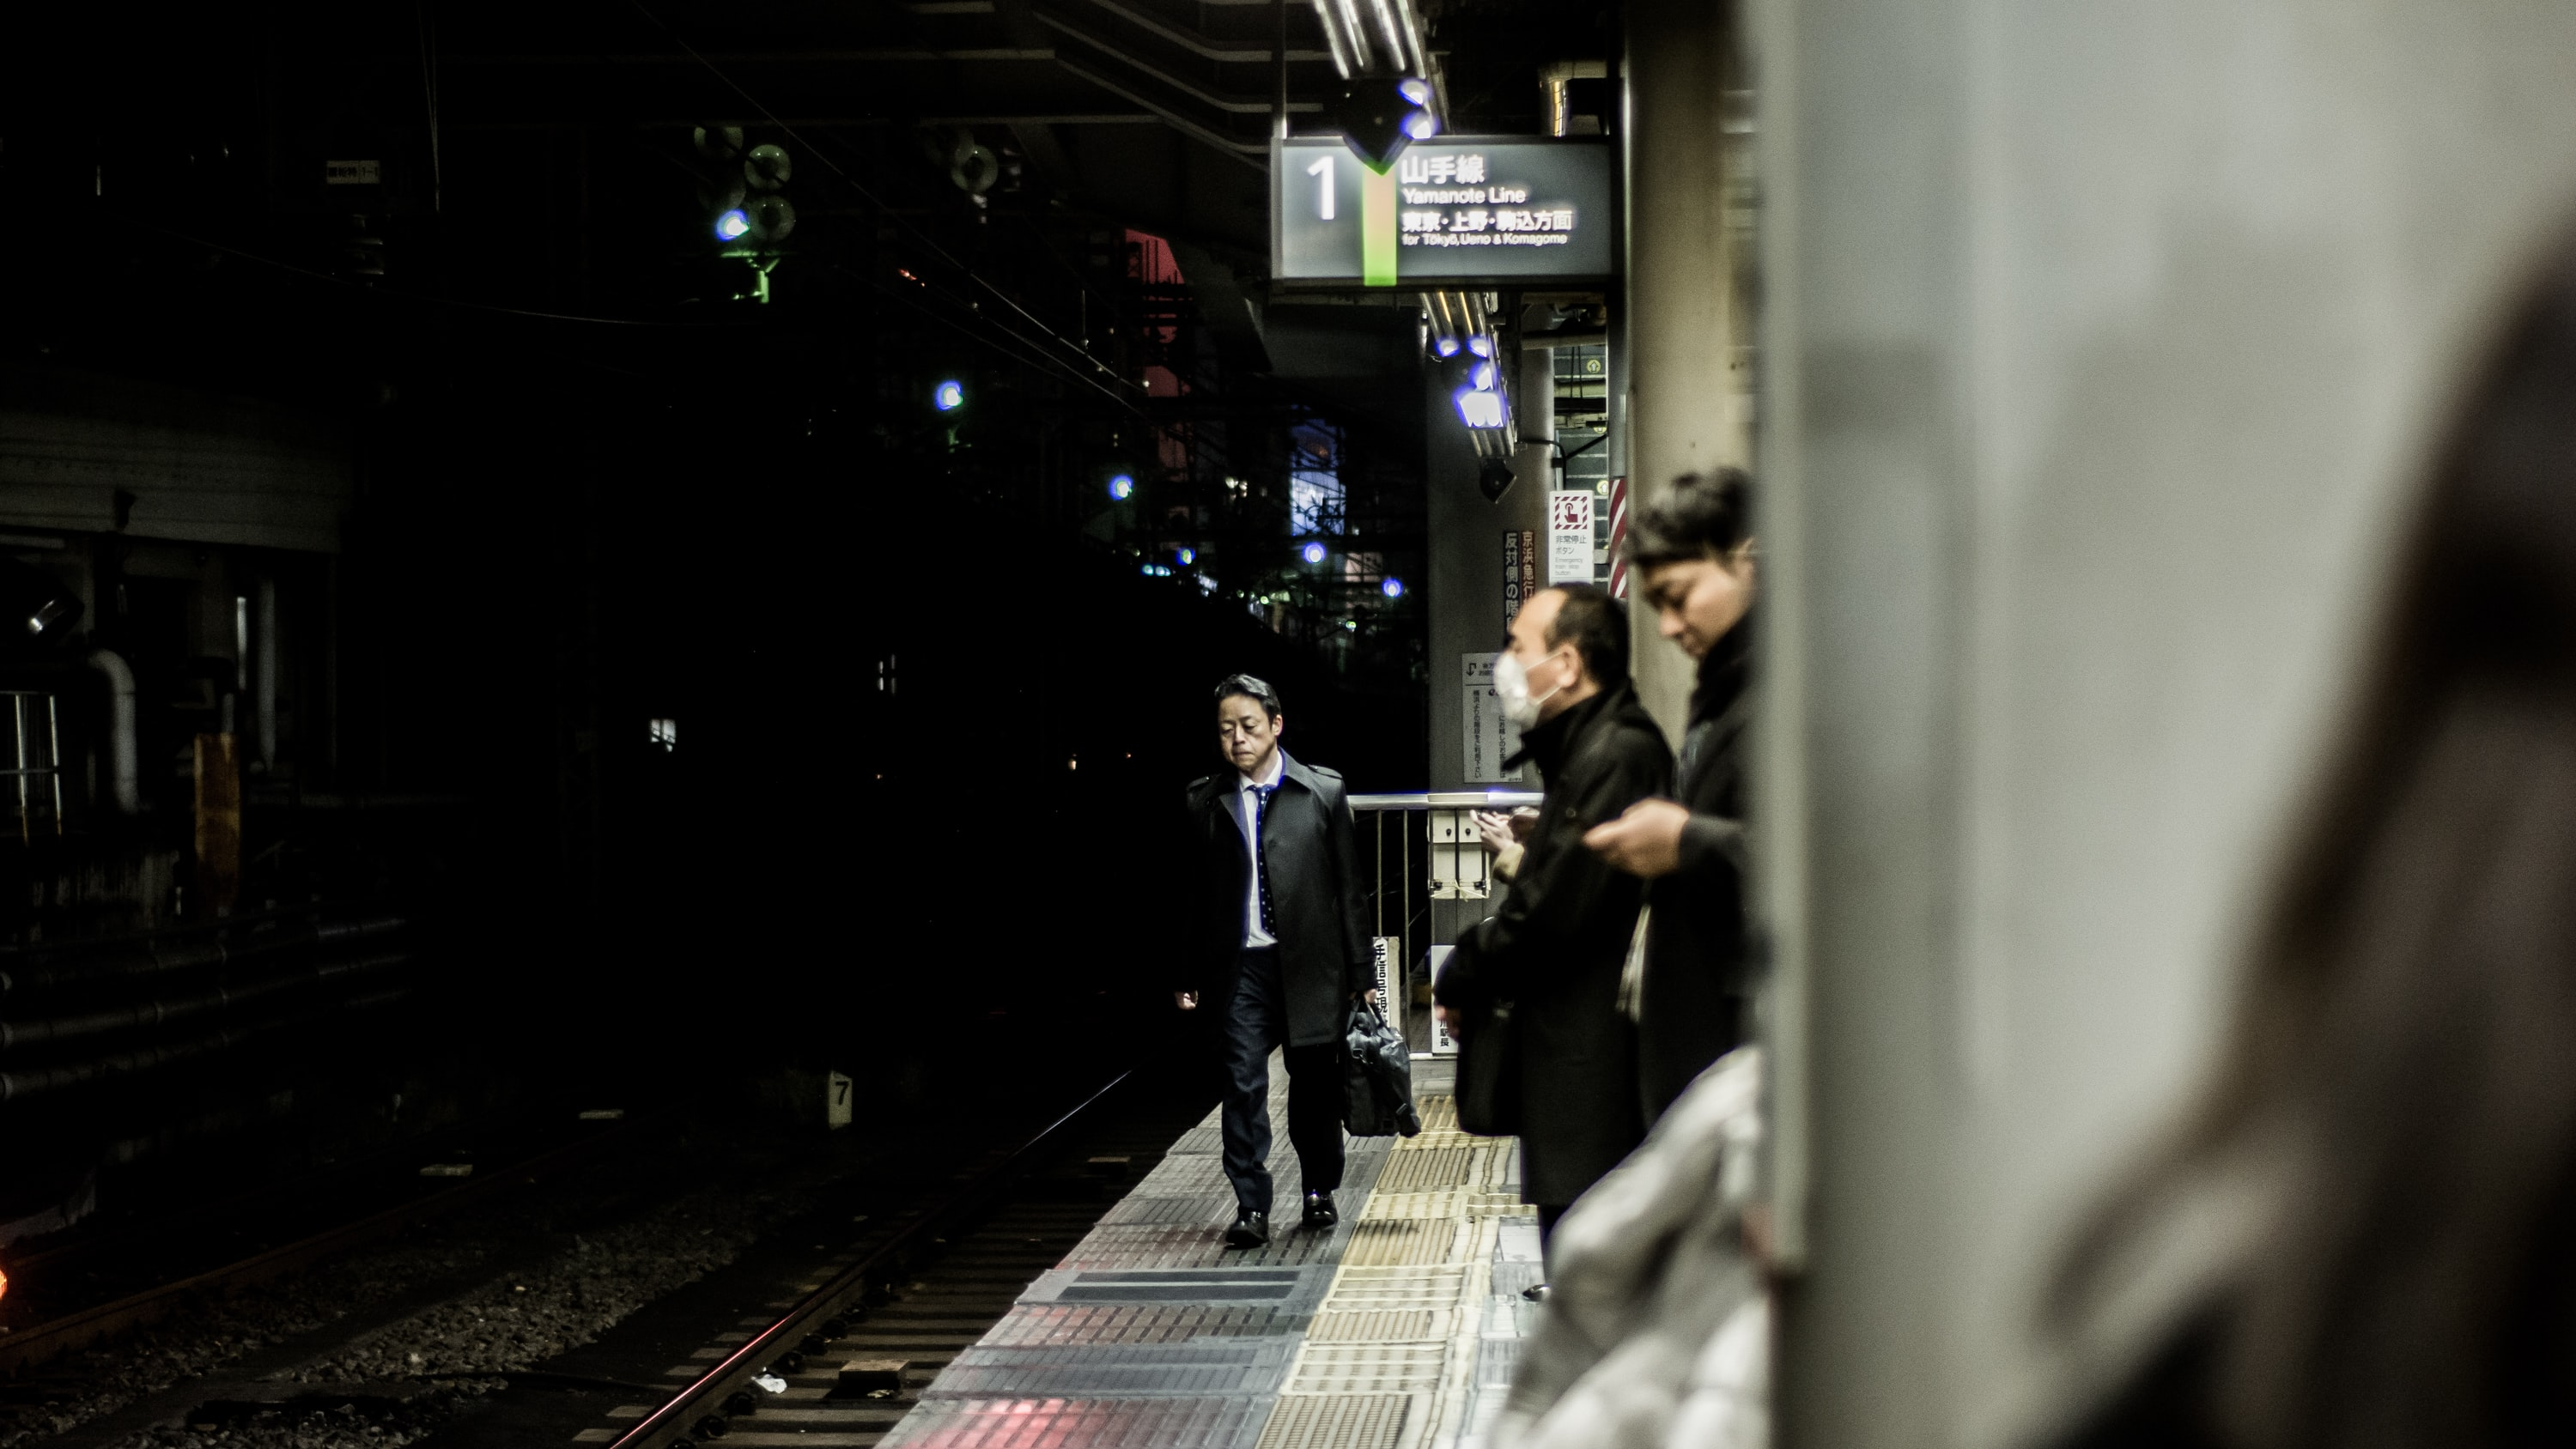 Commuters are walking and waiting by the railway platform of Shinjuku Station.